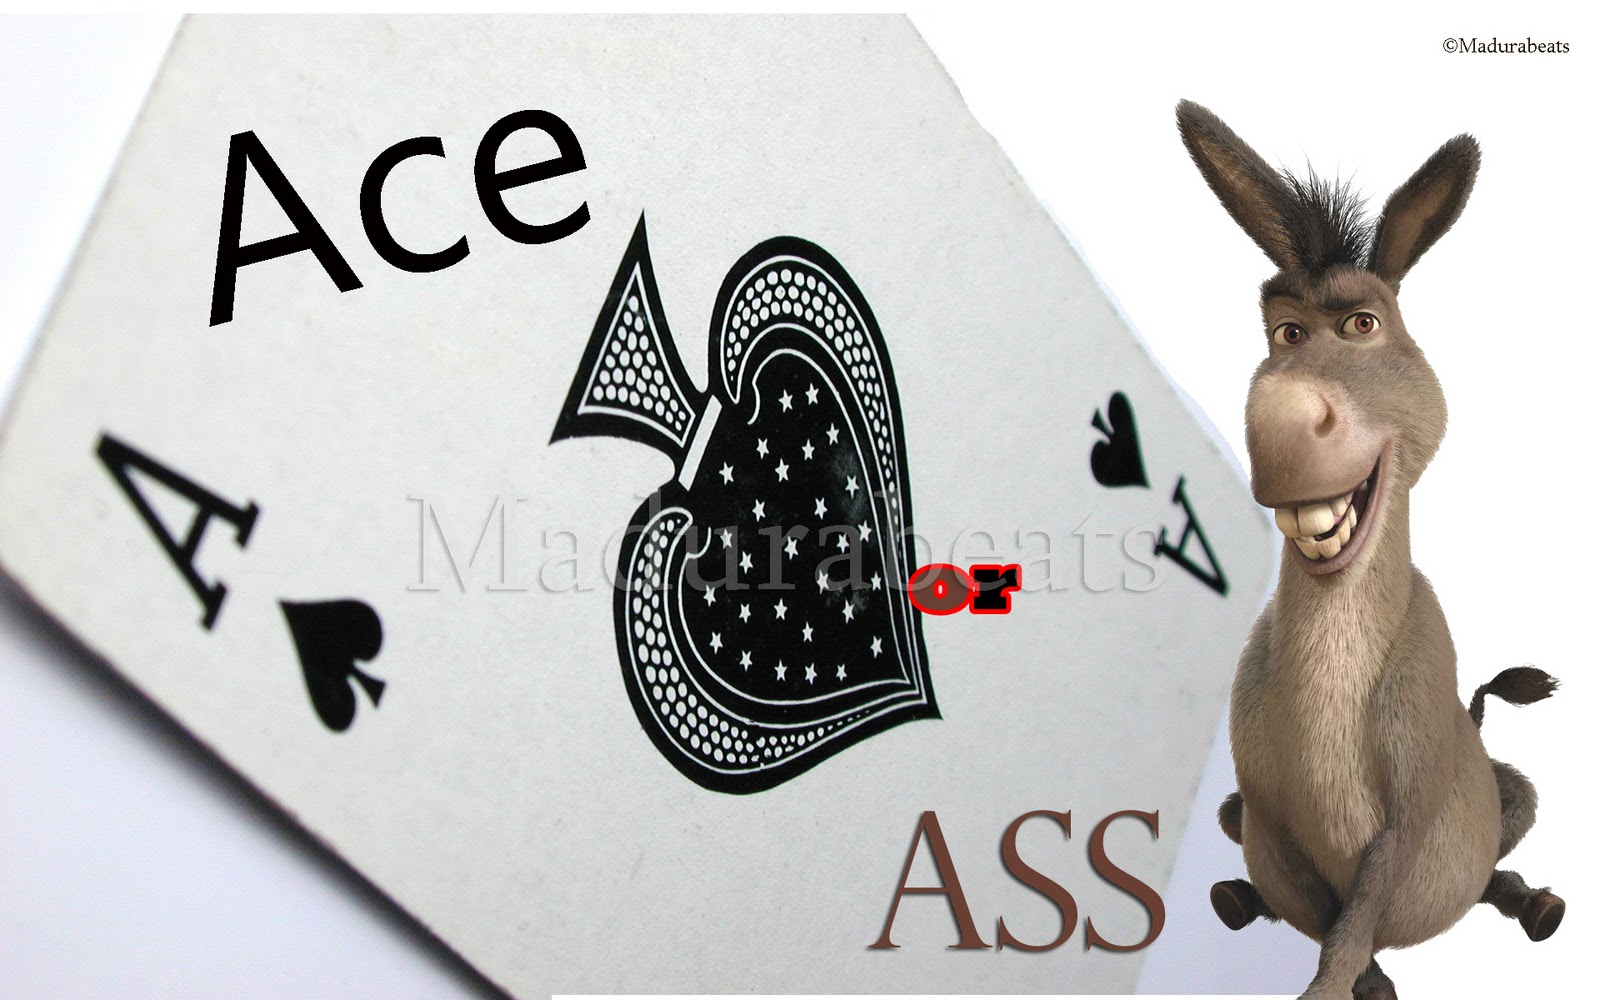 Ace or Ass - A confusion over the Ace game